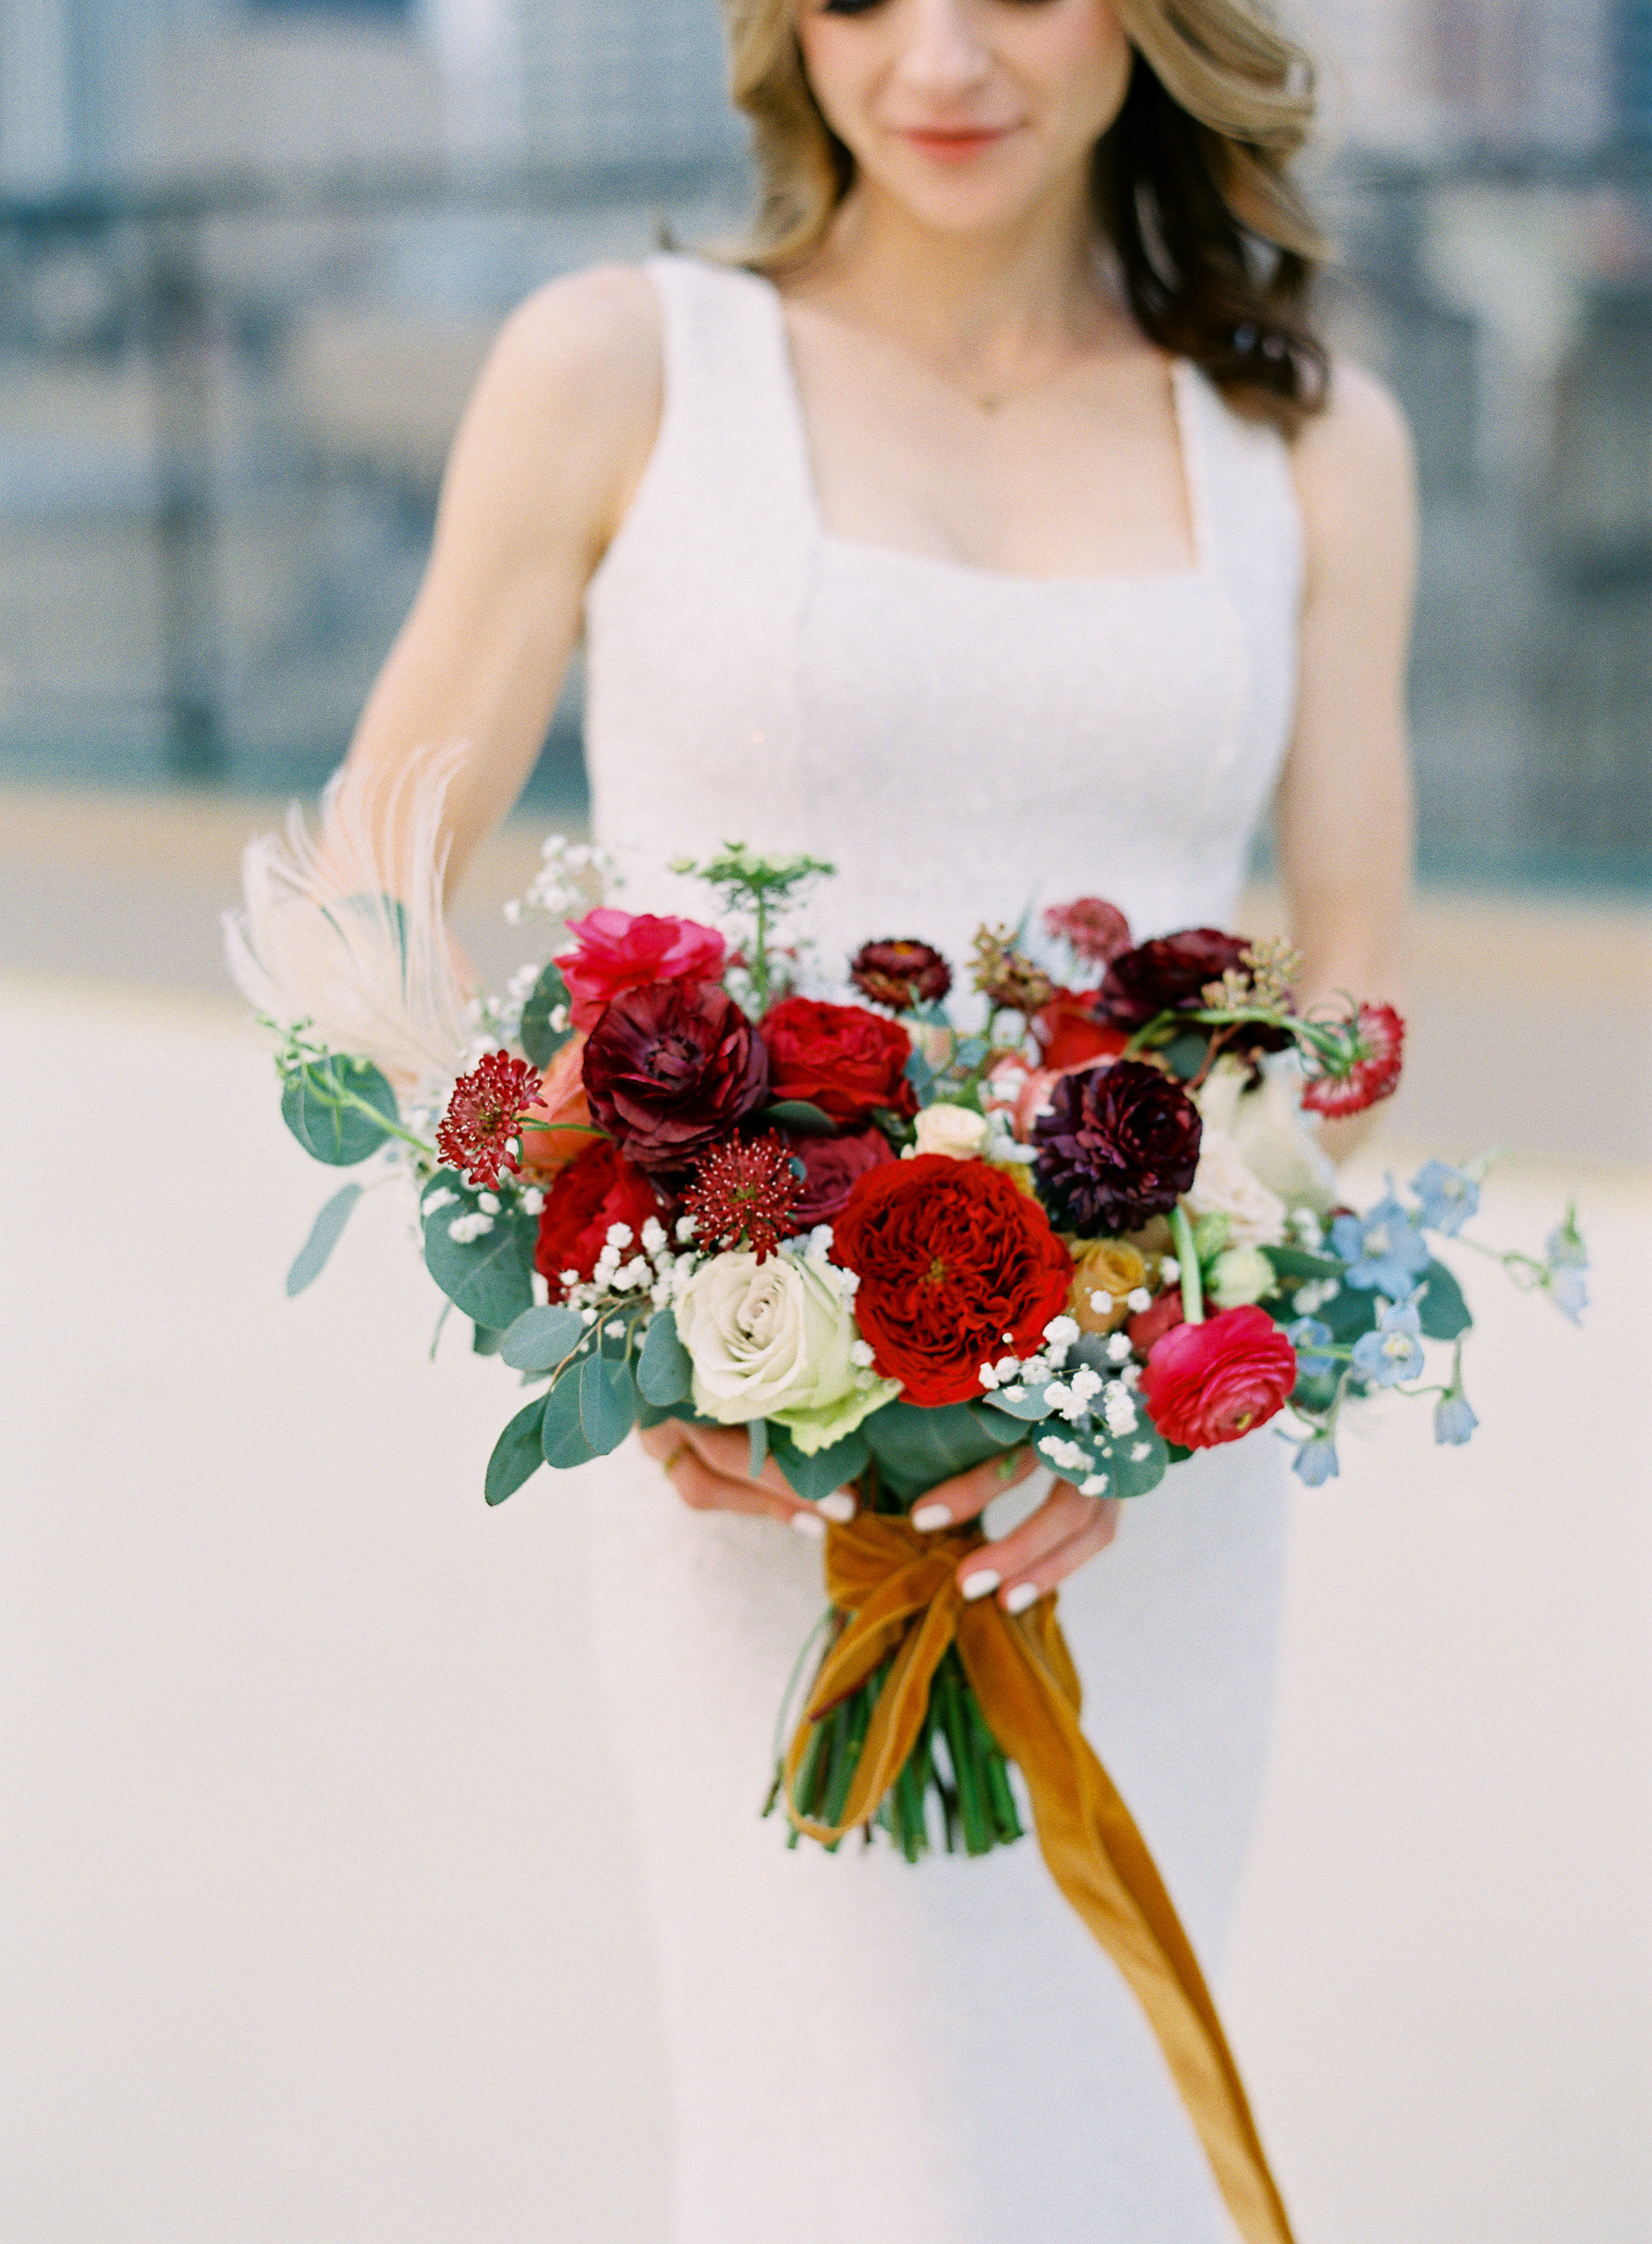 Stephanie's Bouquet- Photo by Sposto Photo